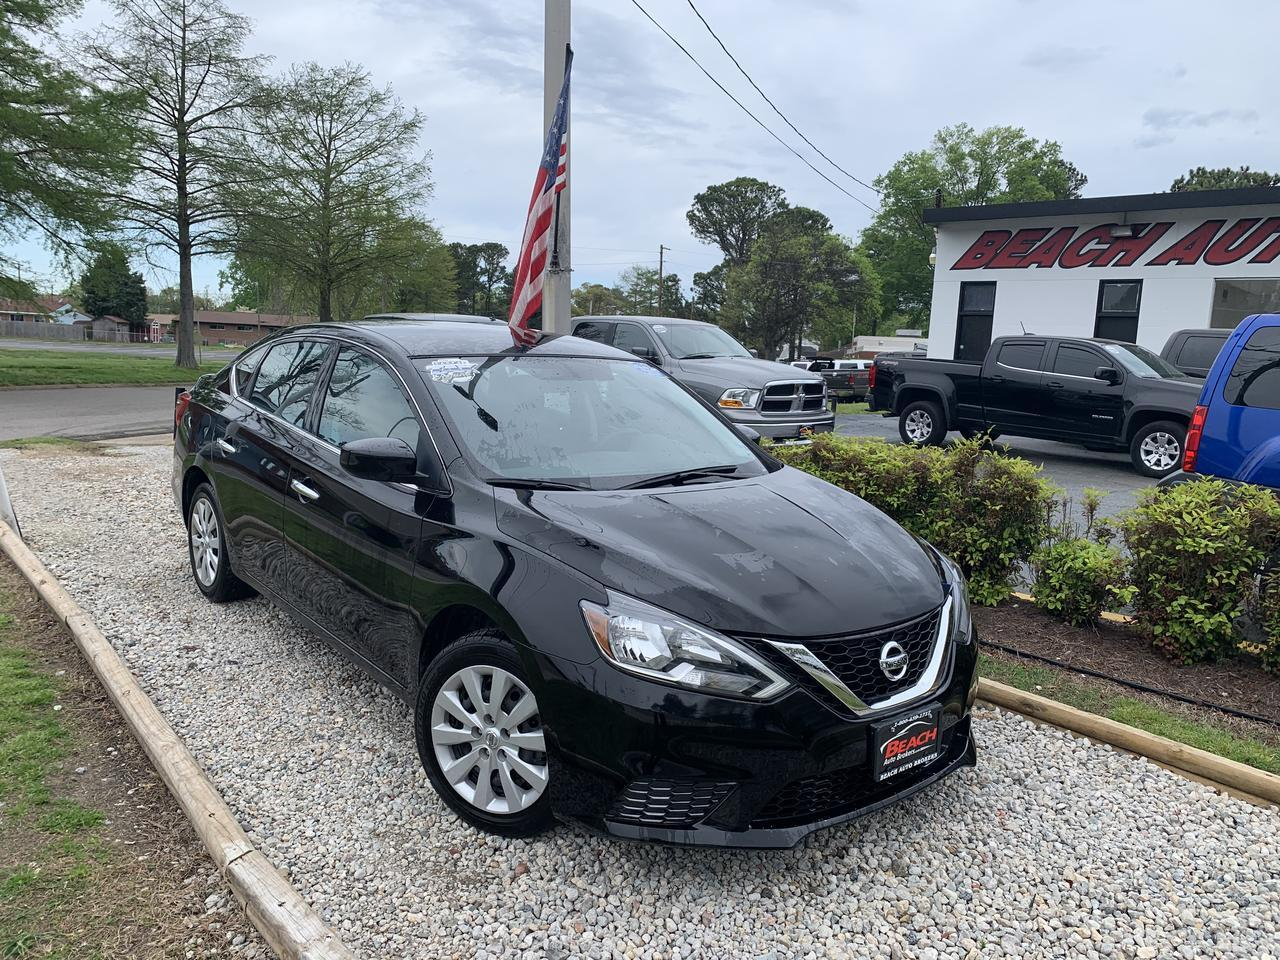 2018 NISSAN SENTRA S, WARRANTY, AUX/USB PORT, BACKUP CAM, BLUETOOTH, SATELLITE RADIO, 1 OWNER!